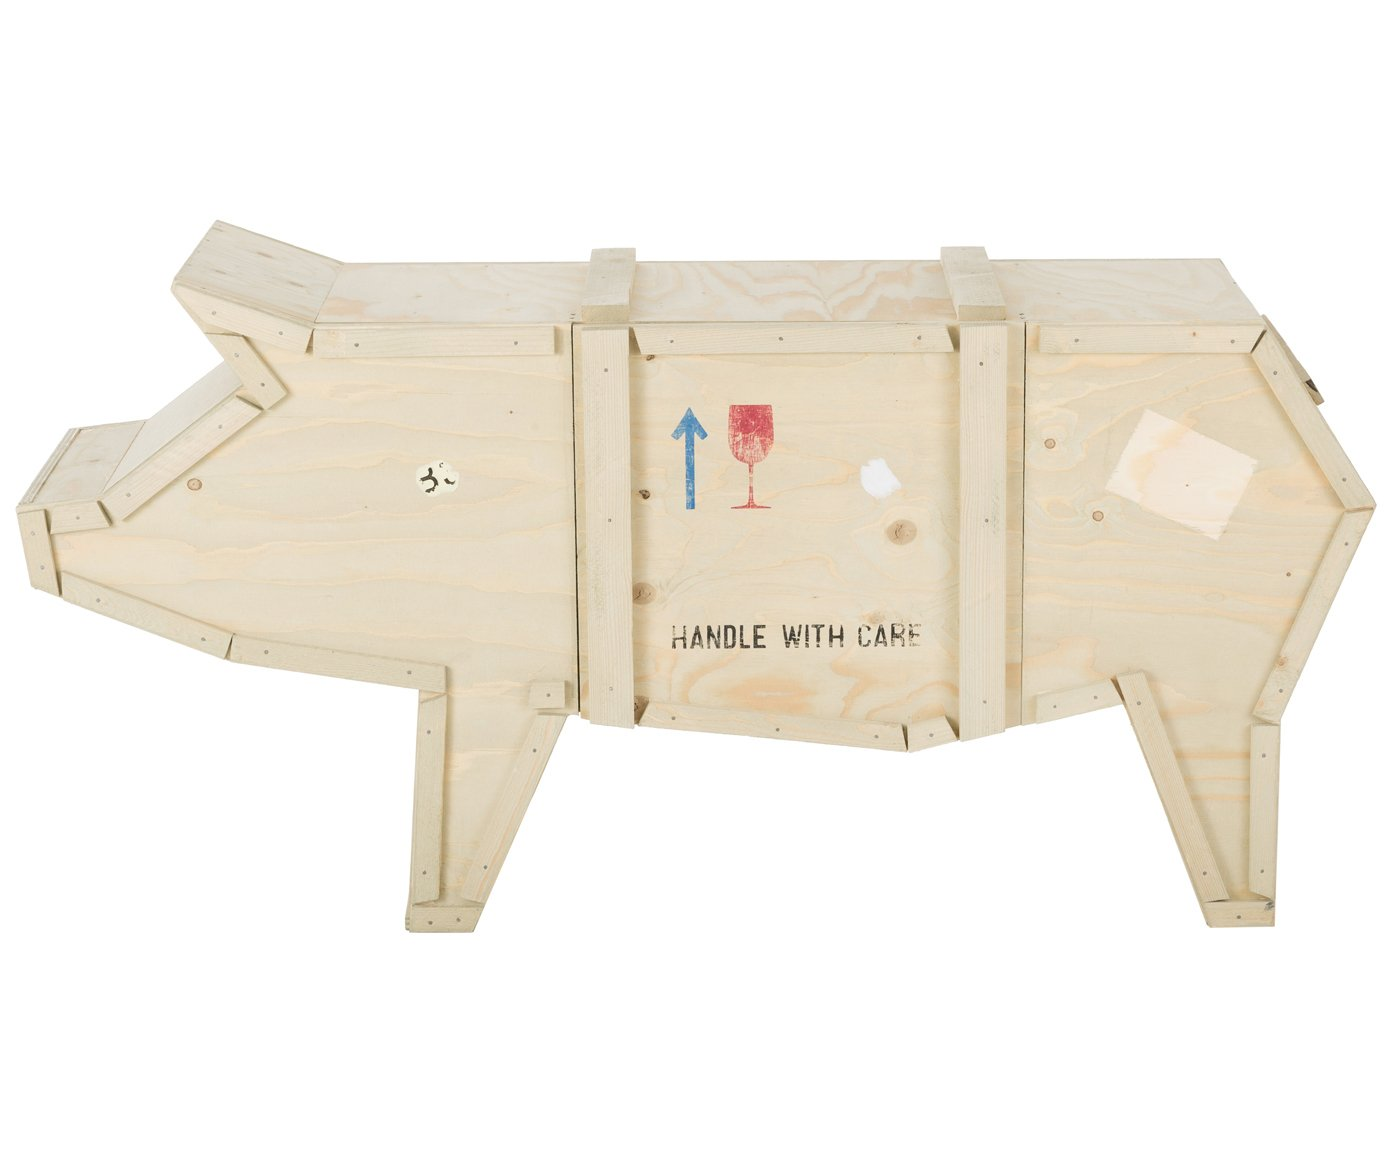 Seletti pig sending animals furniture console wood natural beech 150 x 44 x 76 cm amazon co uk kitchen home